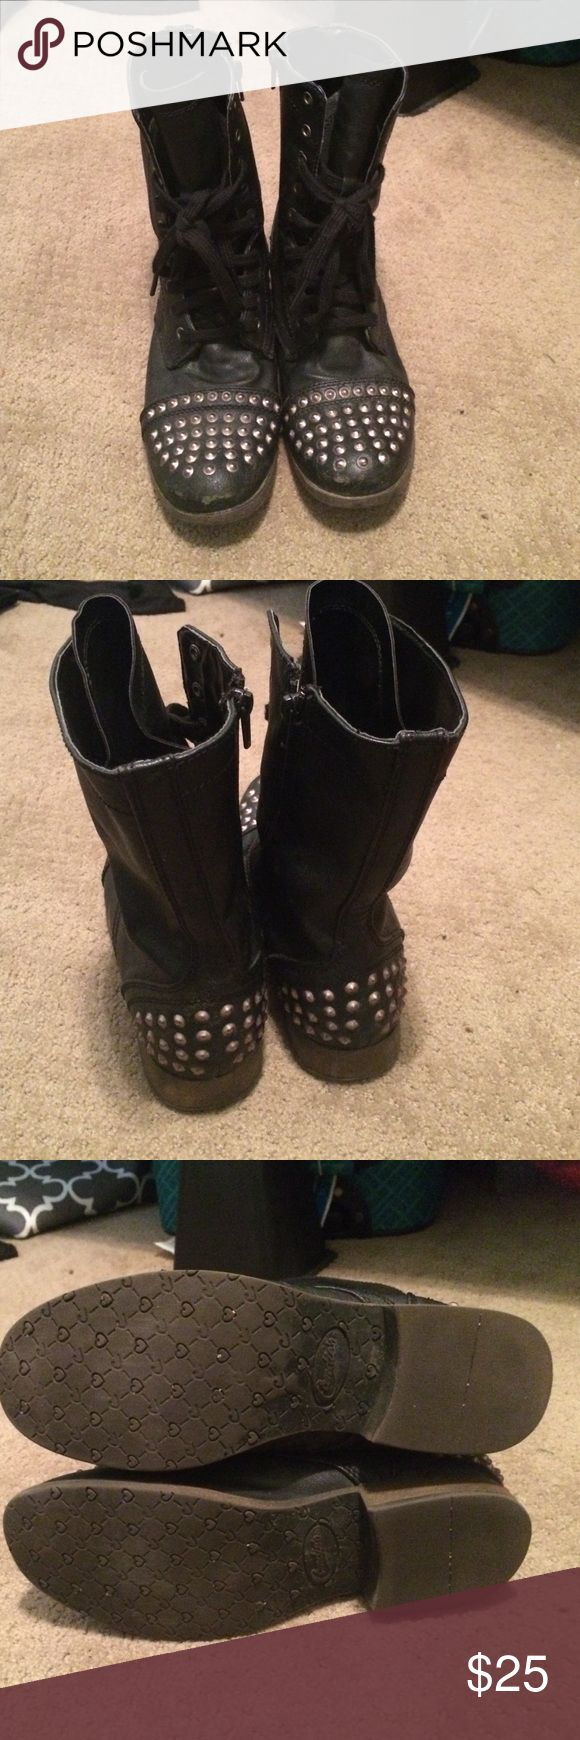 Black studded combat boots! Size 8 Super cute to look a little edgy!! Lots of life left in them! Candie's Shoes Combat & Moto Boots